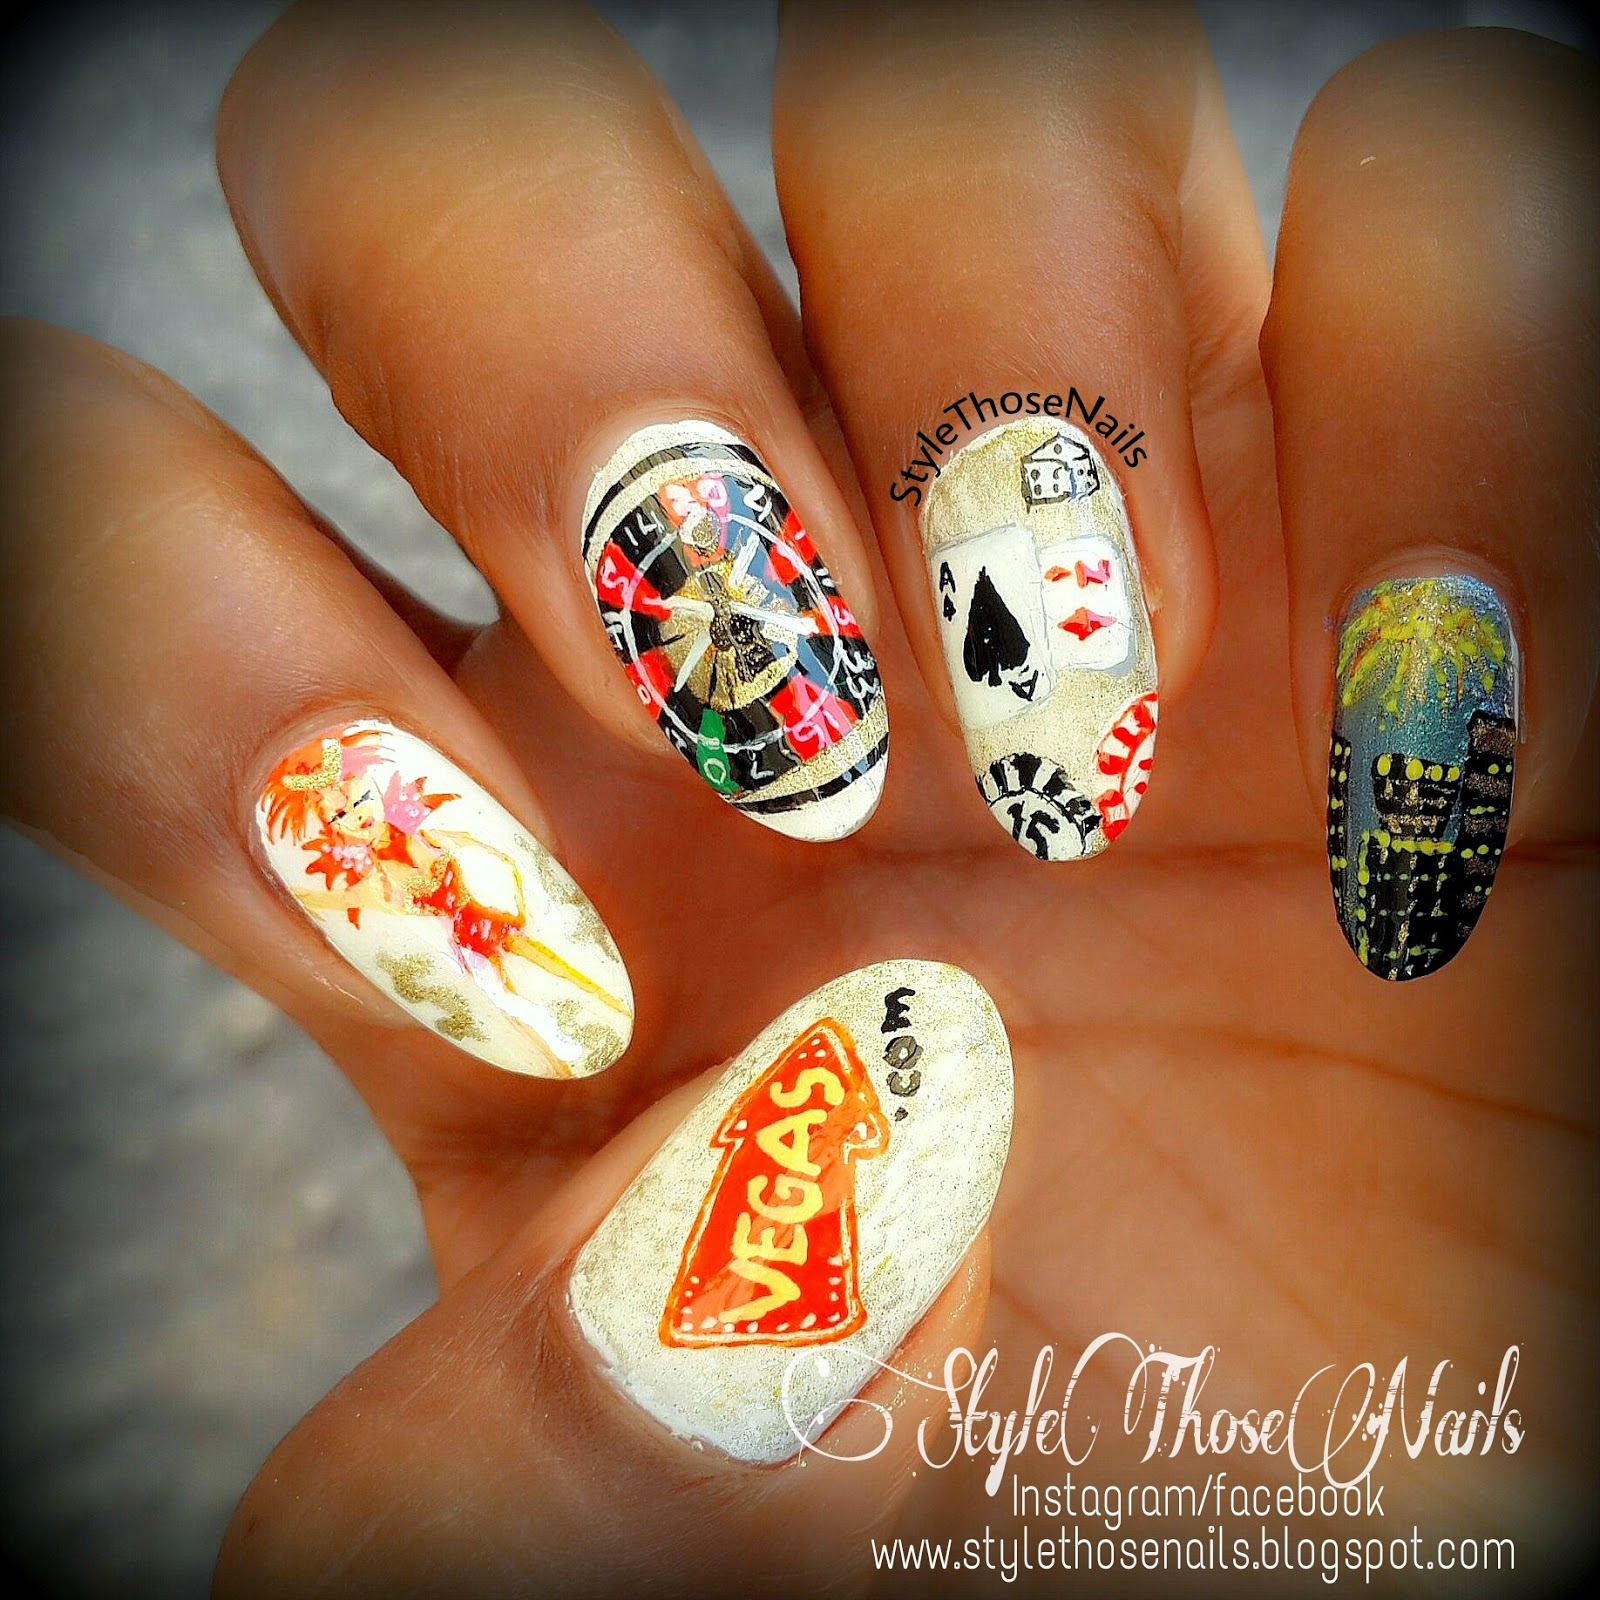 Style Those Nails Night Out In Vegas A Las Vegas Themed Nail Art